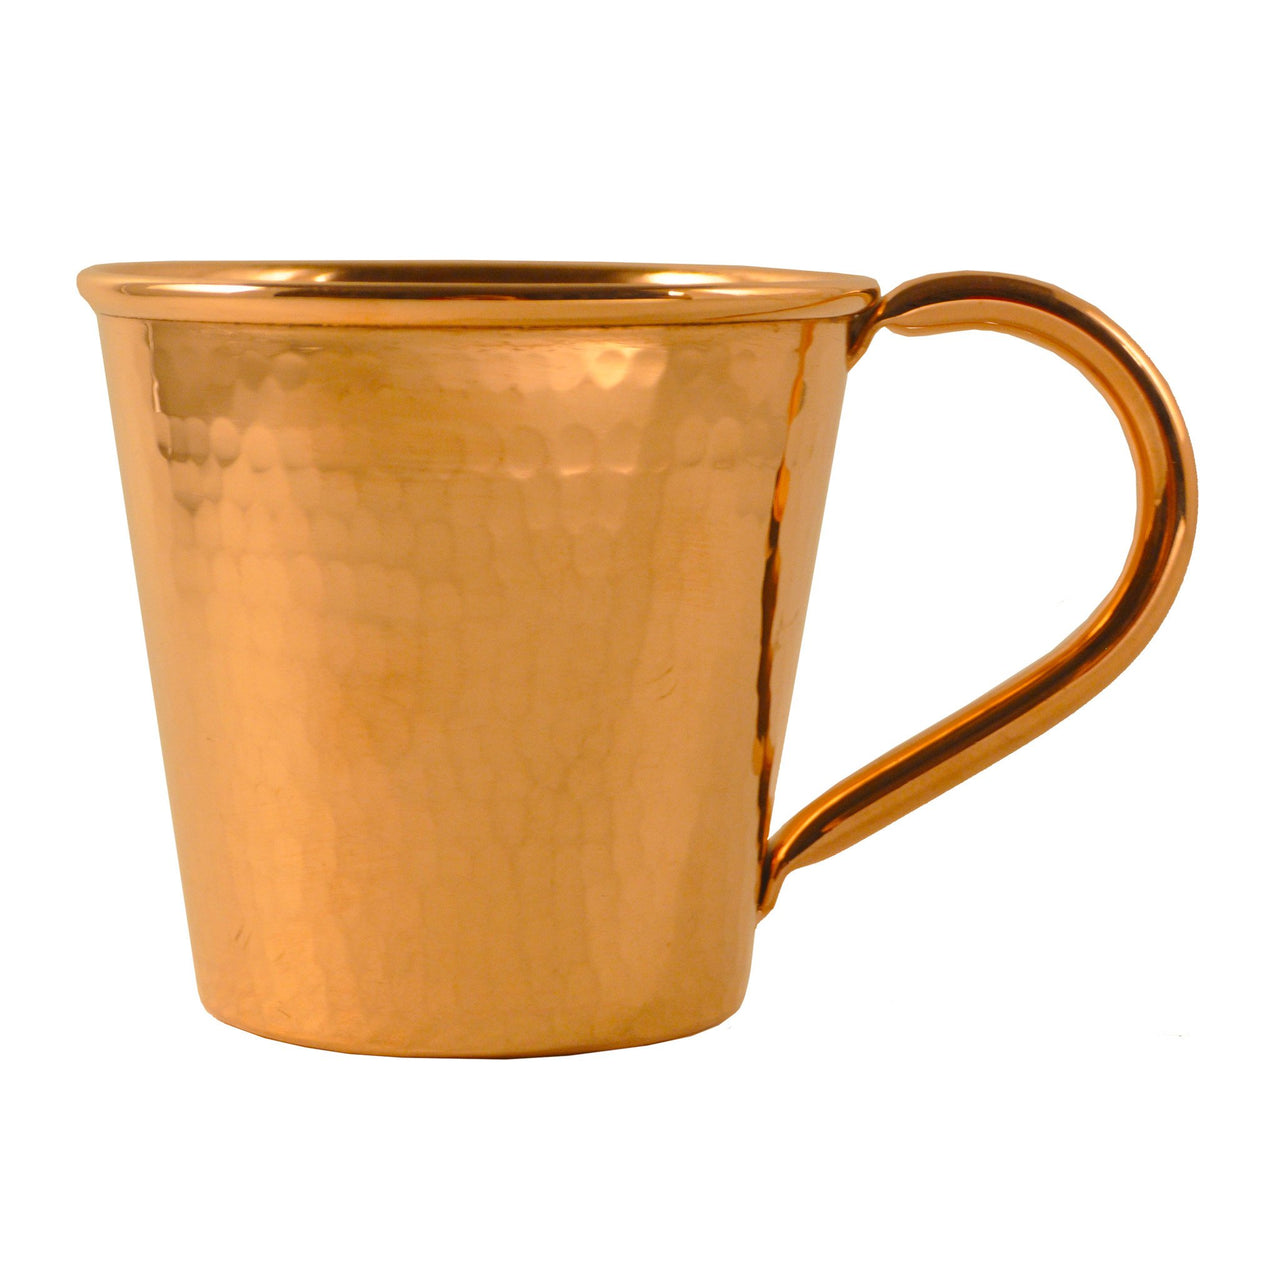 Sertodo Copper Moscow Mule Mug, The Hour Shop Bar Ware